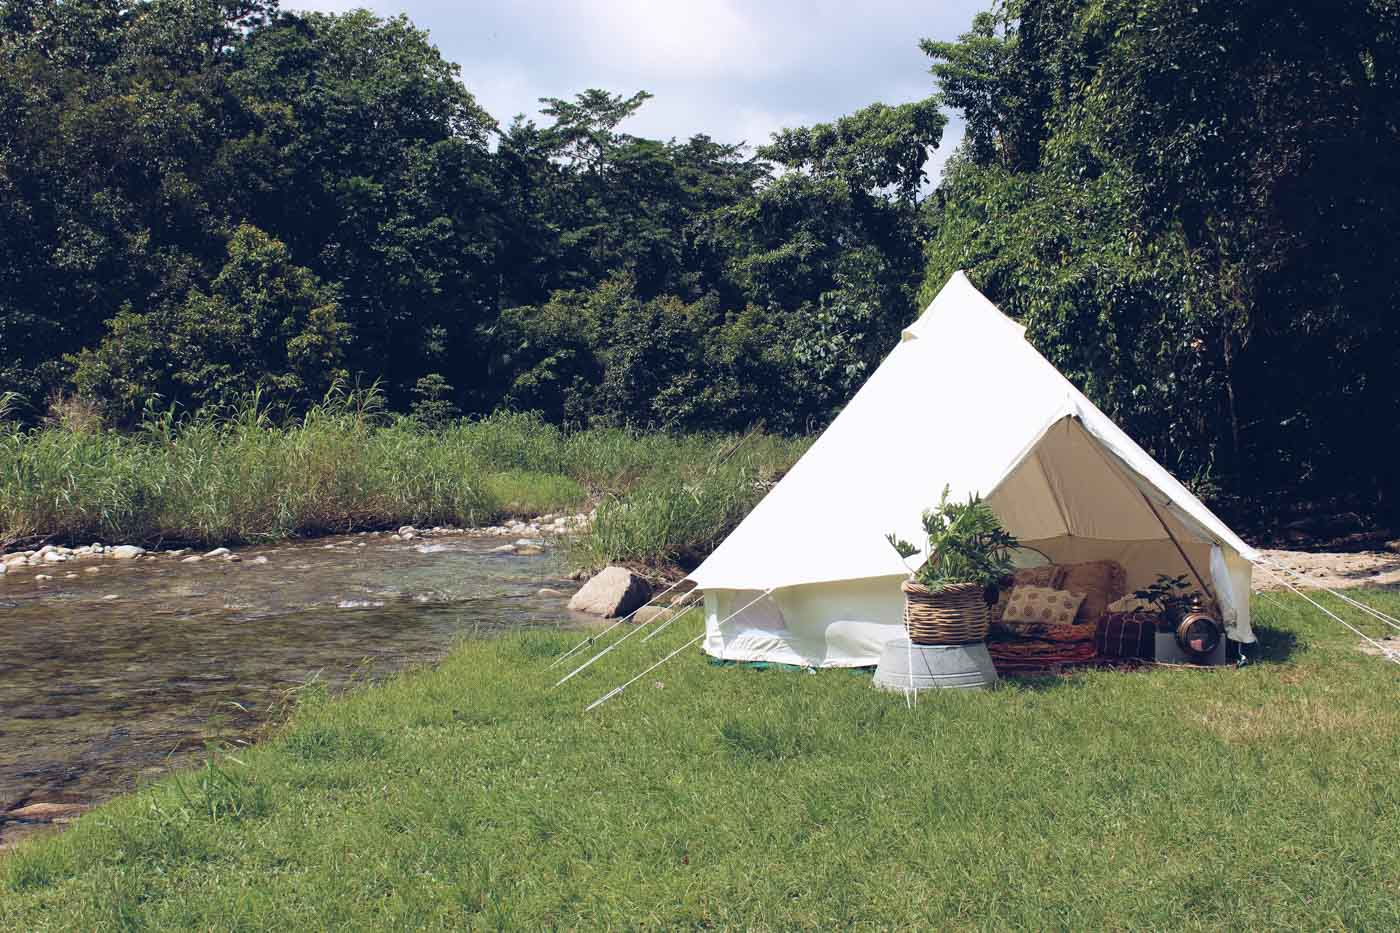 the_Collection_co_grazing_table_cairns_weddings_catering_grazing_platter_hire_pop_up_picnic_bell_tent_event_hire_styling-25-2.jpg